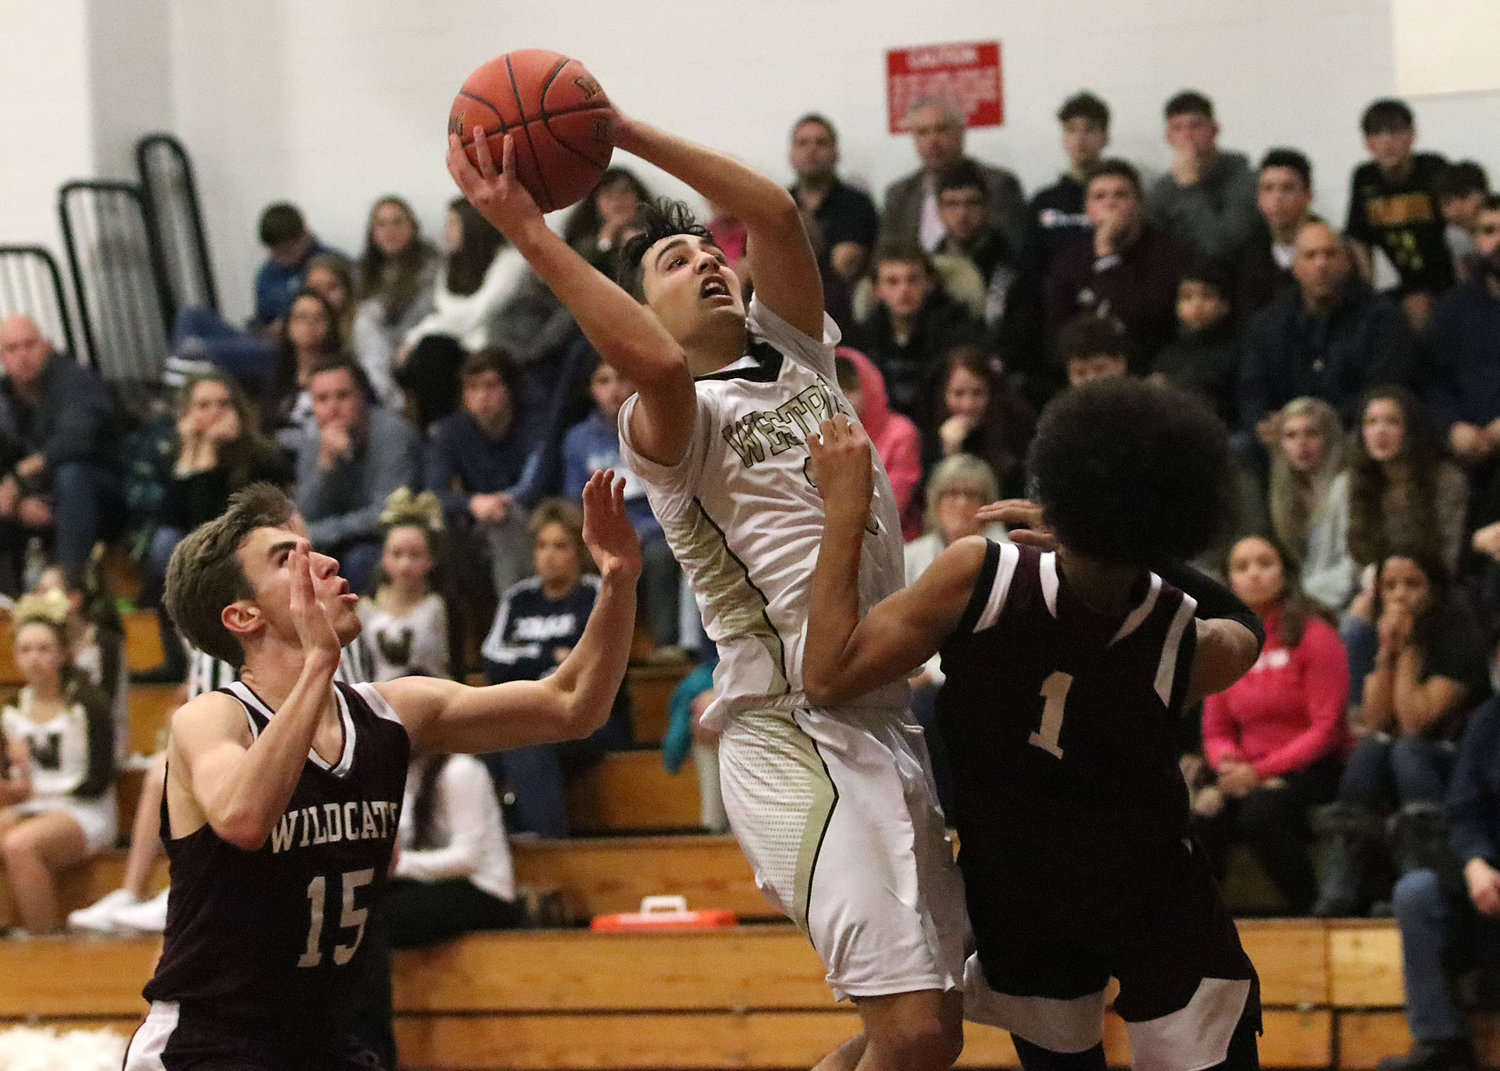 Domanick Vitorino flies in for a layup in the second half.